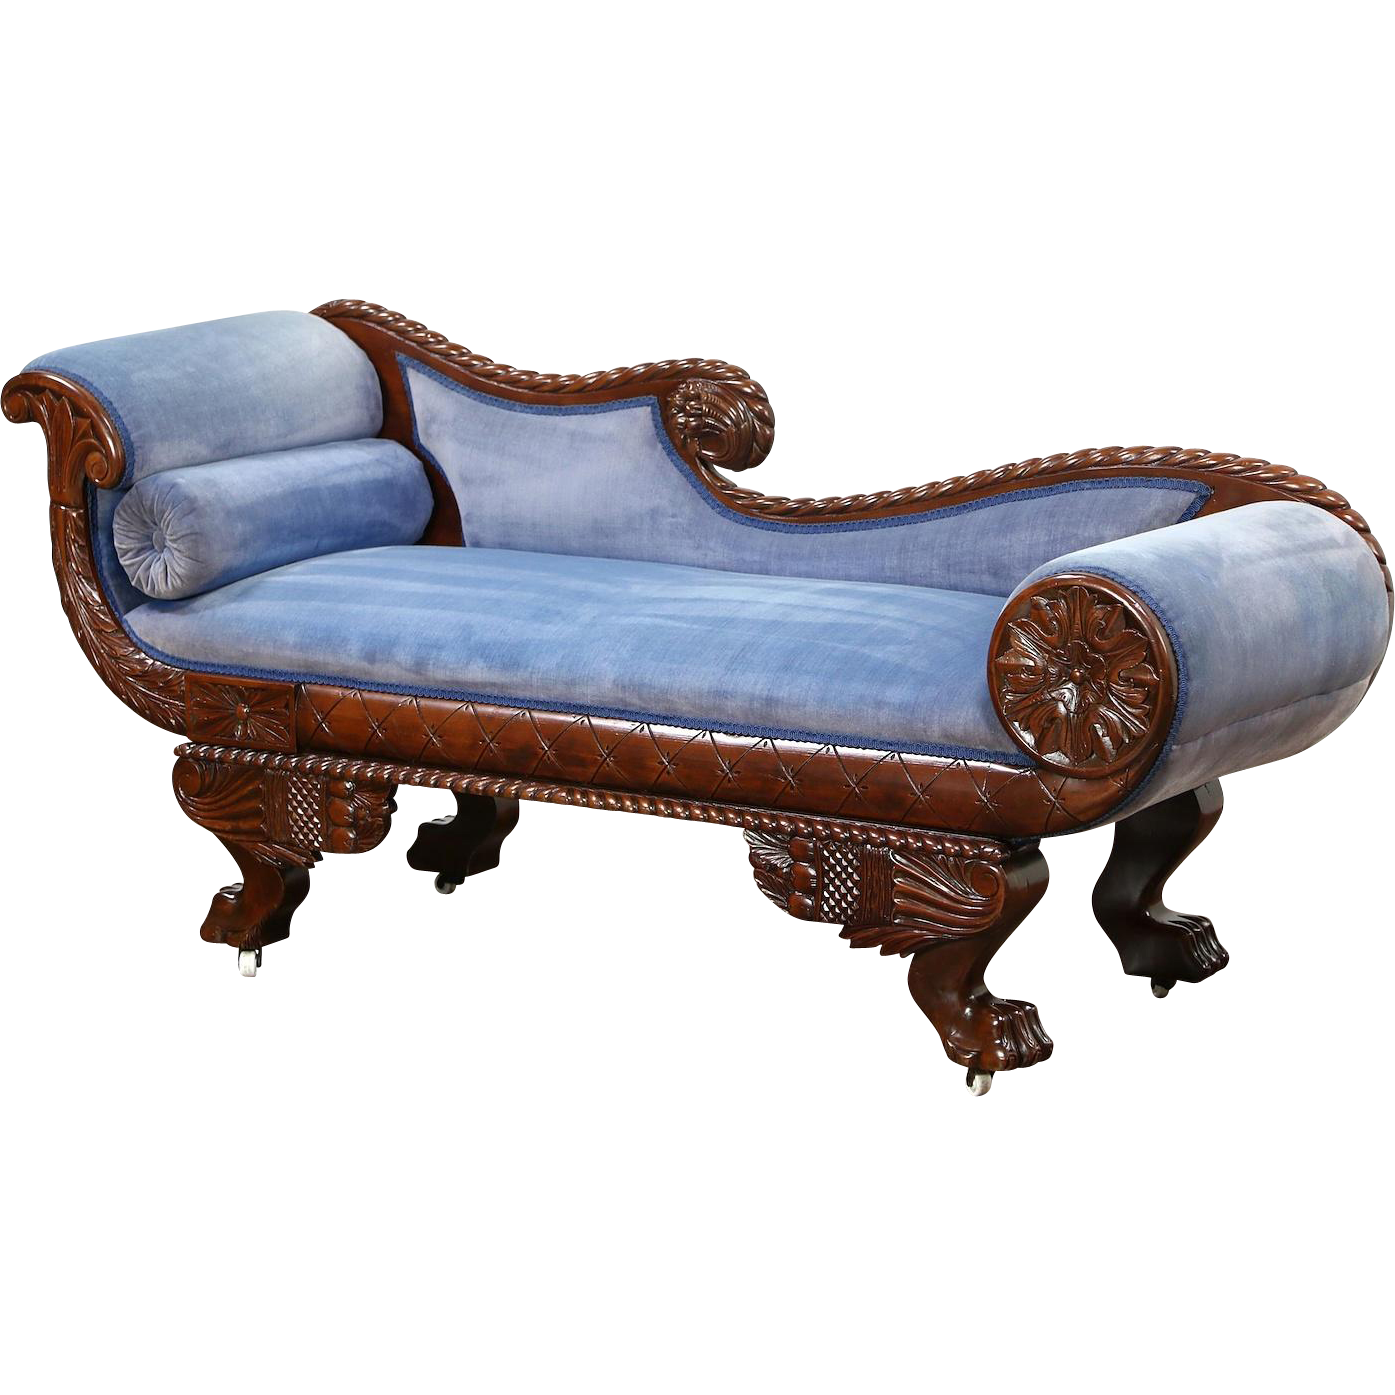 Empire 1895 Antique Chaise Recamier Lounge Or Sofa Carved Paw Feet Chaise Royal Furniture Victorian Benches